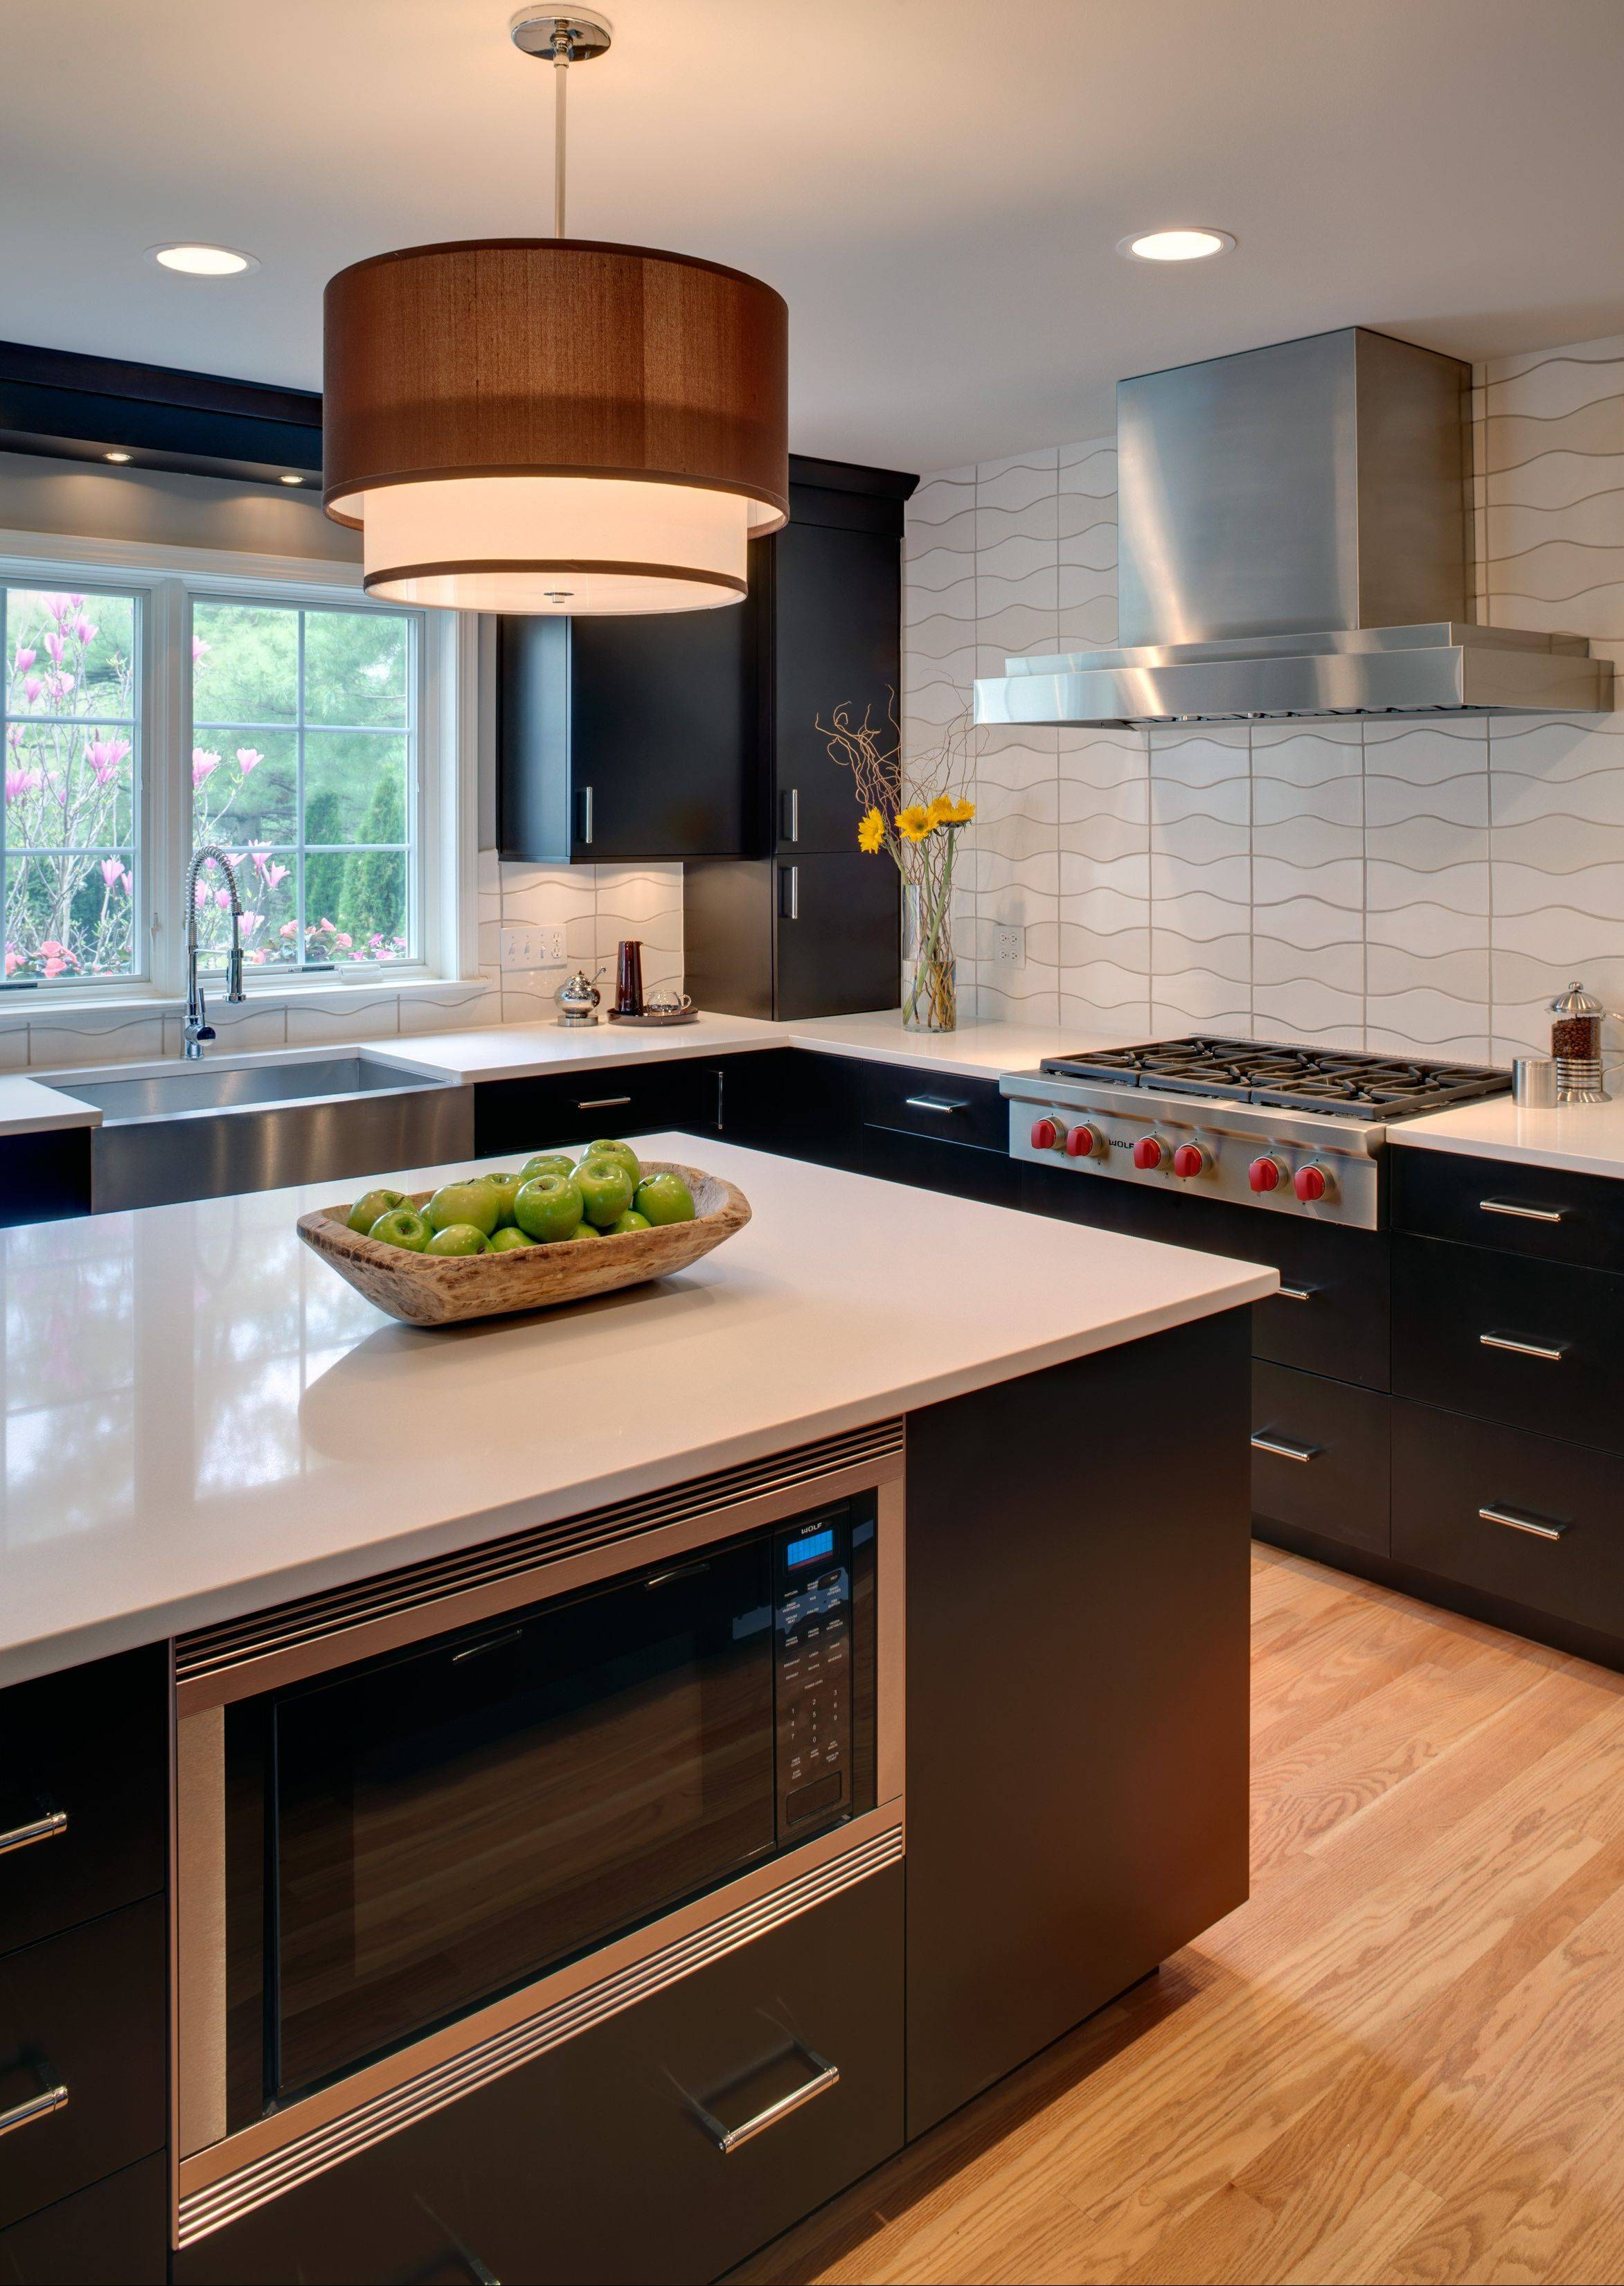 Gladys Schanstra won best of show for this medium-sized contemporary Elmhurst kitchen.